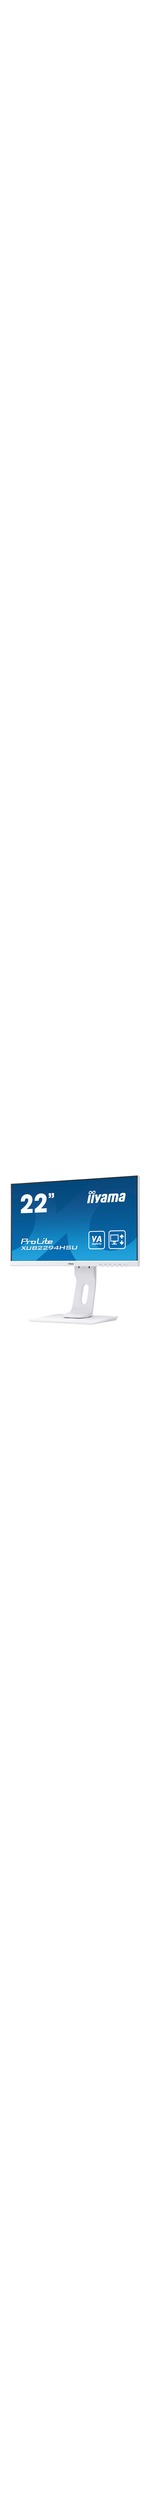 iiyama ProLite XUB2294HSU-W1 21.5And#34; Full HD LED LCD Monitor - 16:9 - Matt White